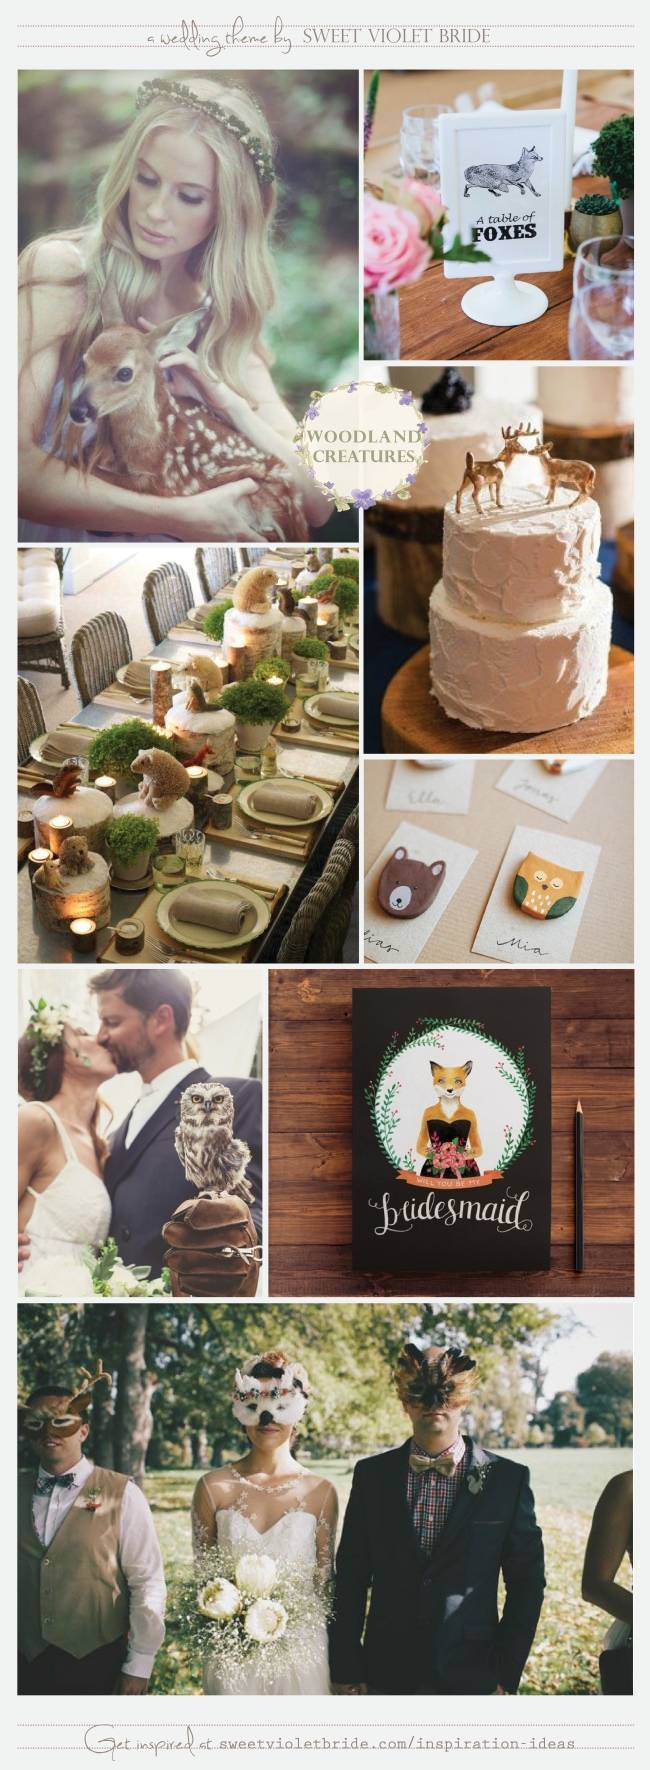 Wedding Inspiration Board #30: Woodland Creatures